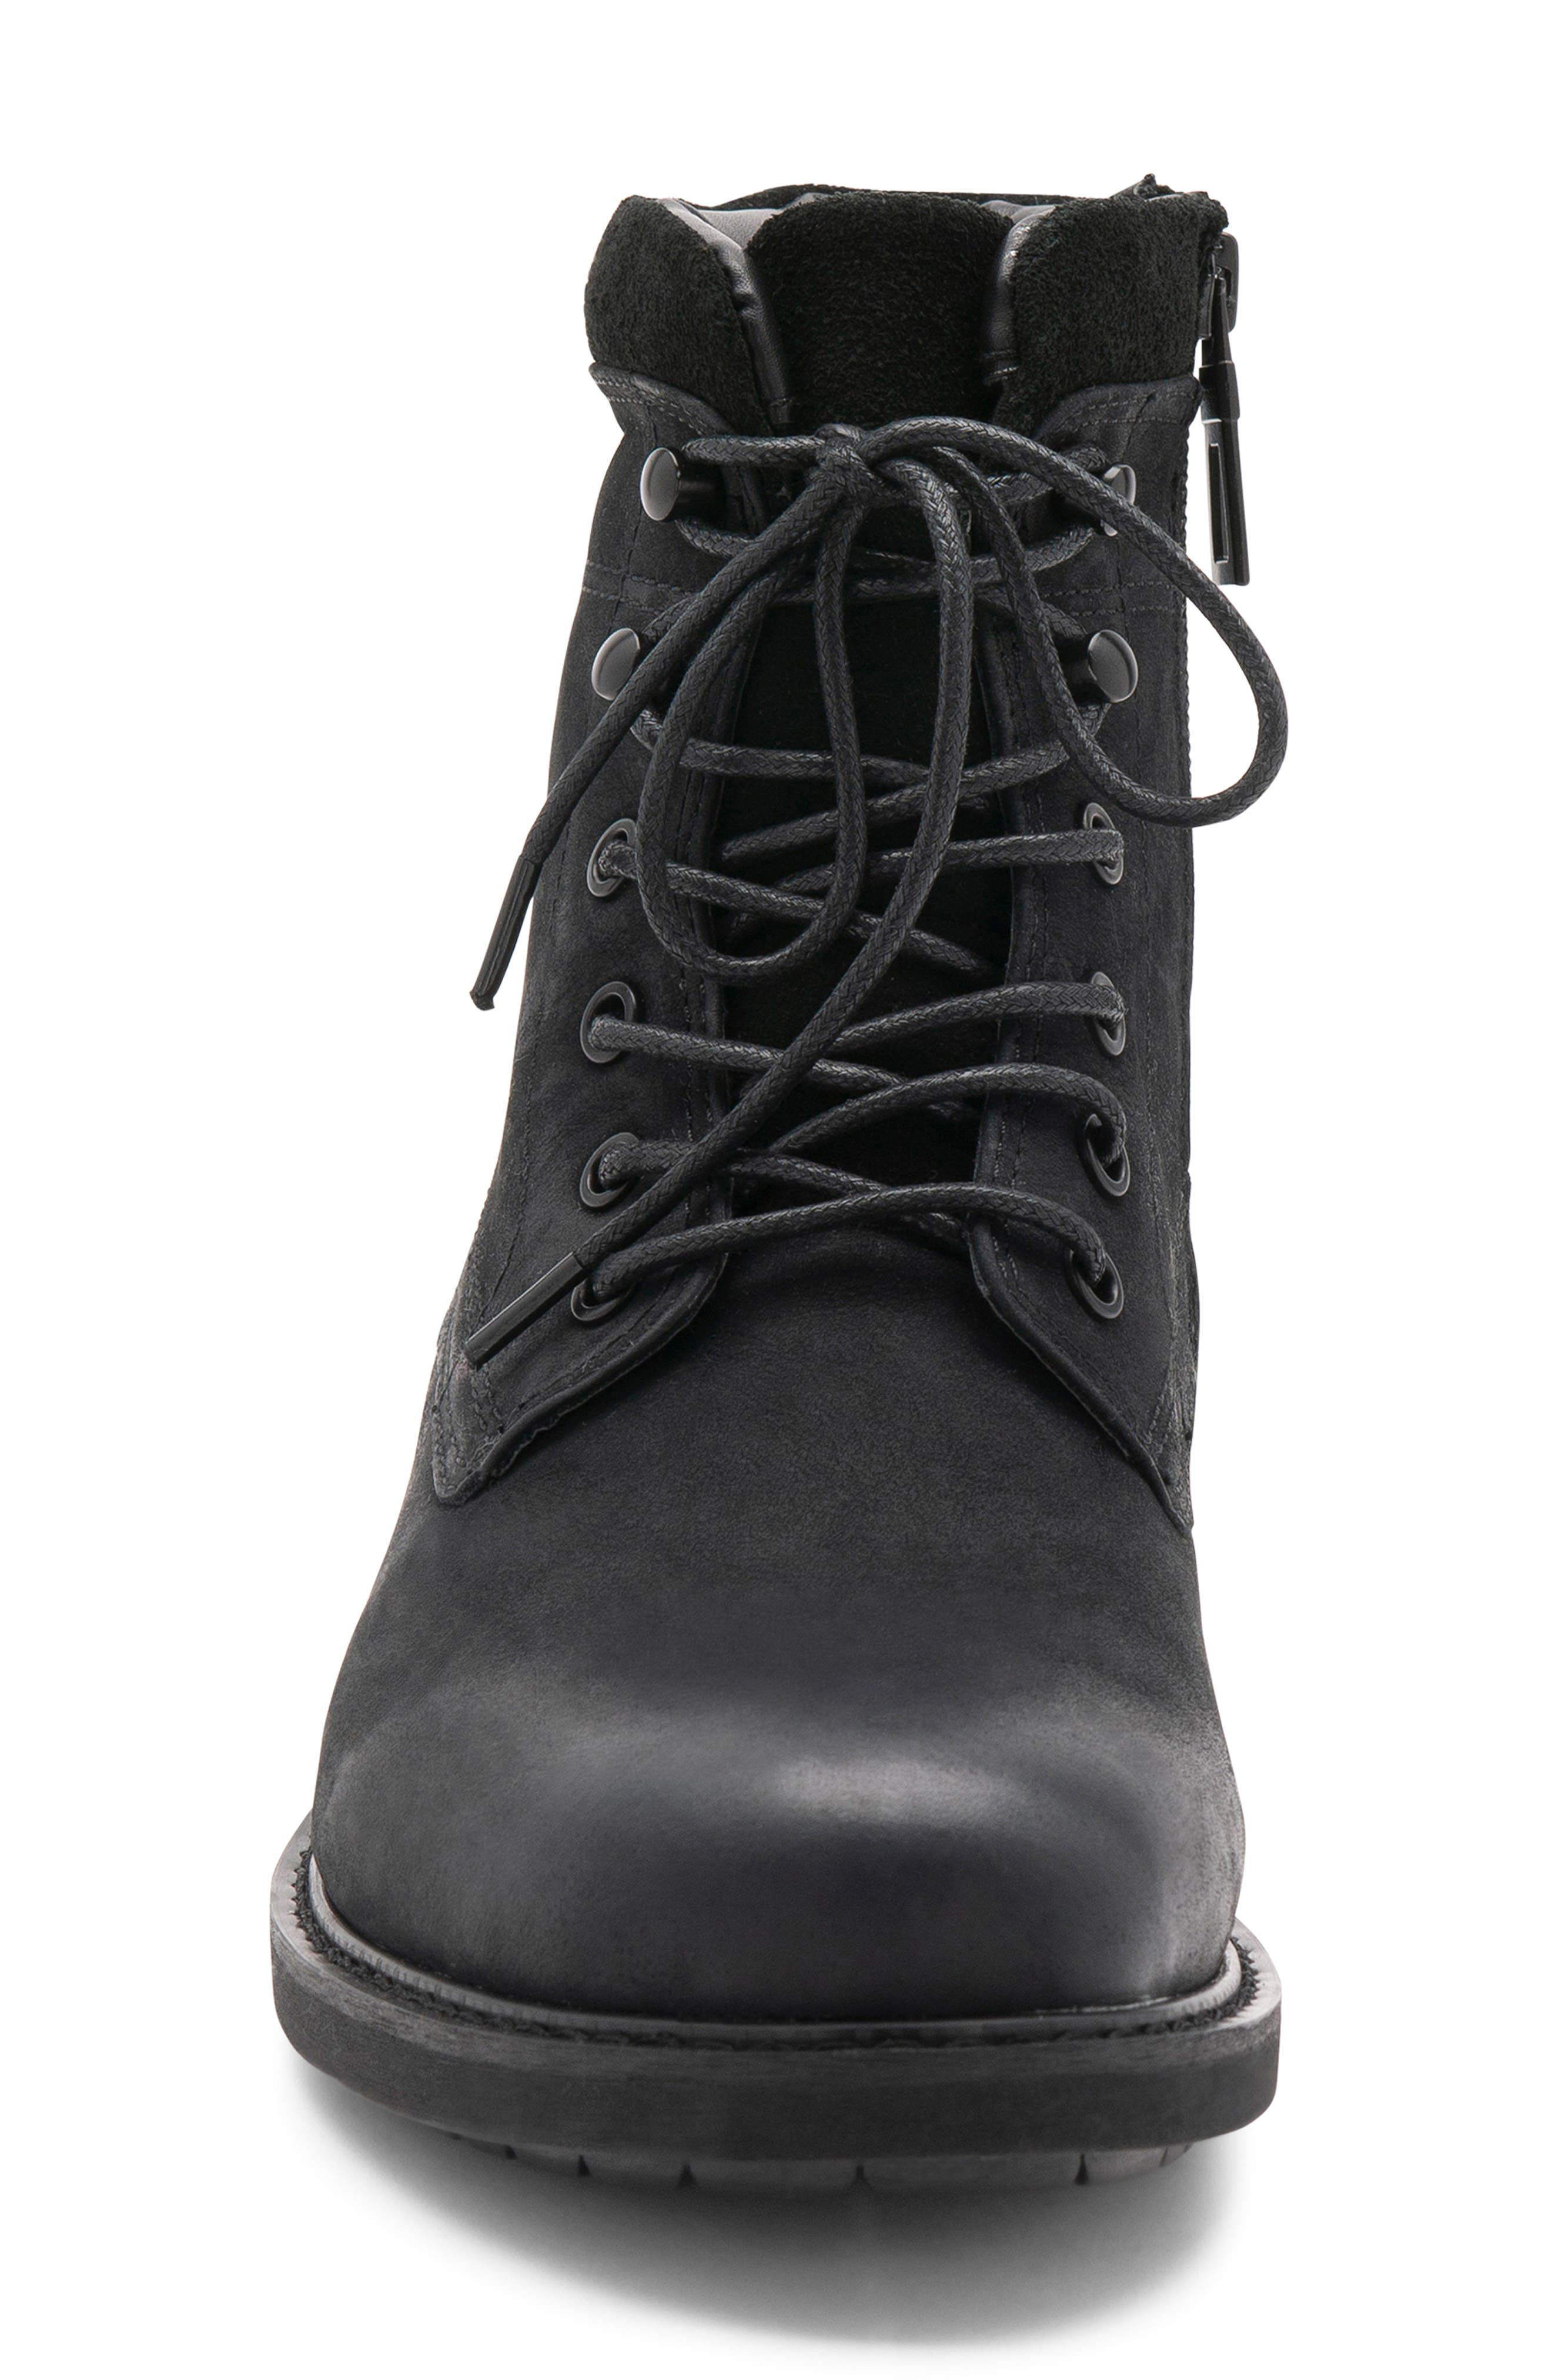 BLONDO, Patton Waterproof Plain Toe Boot, Alternate thumbnail 4, color, BLACK NUBUCK